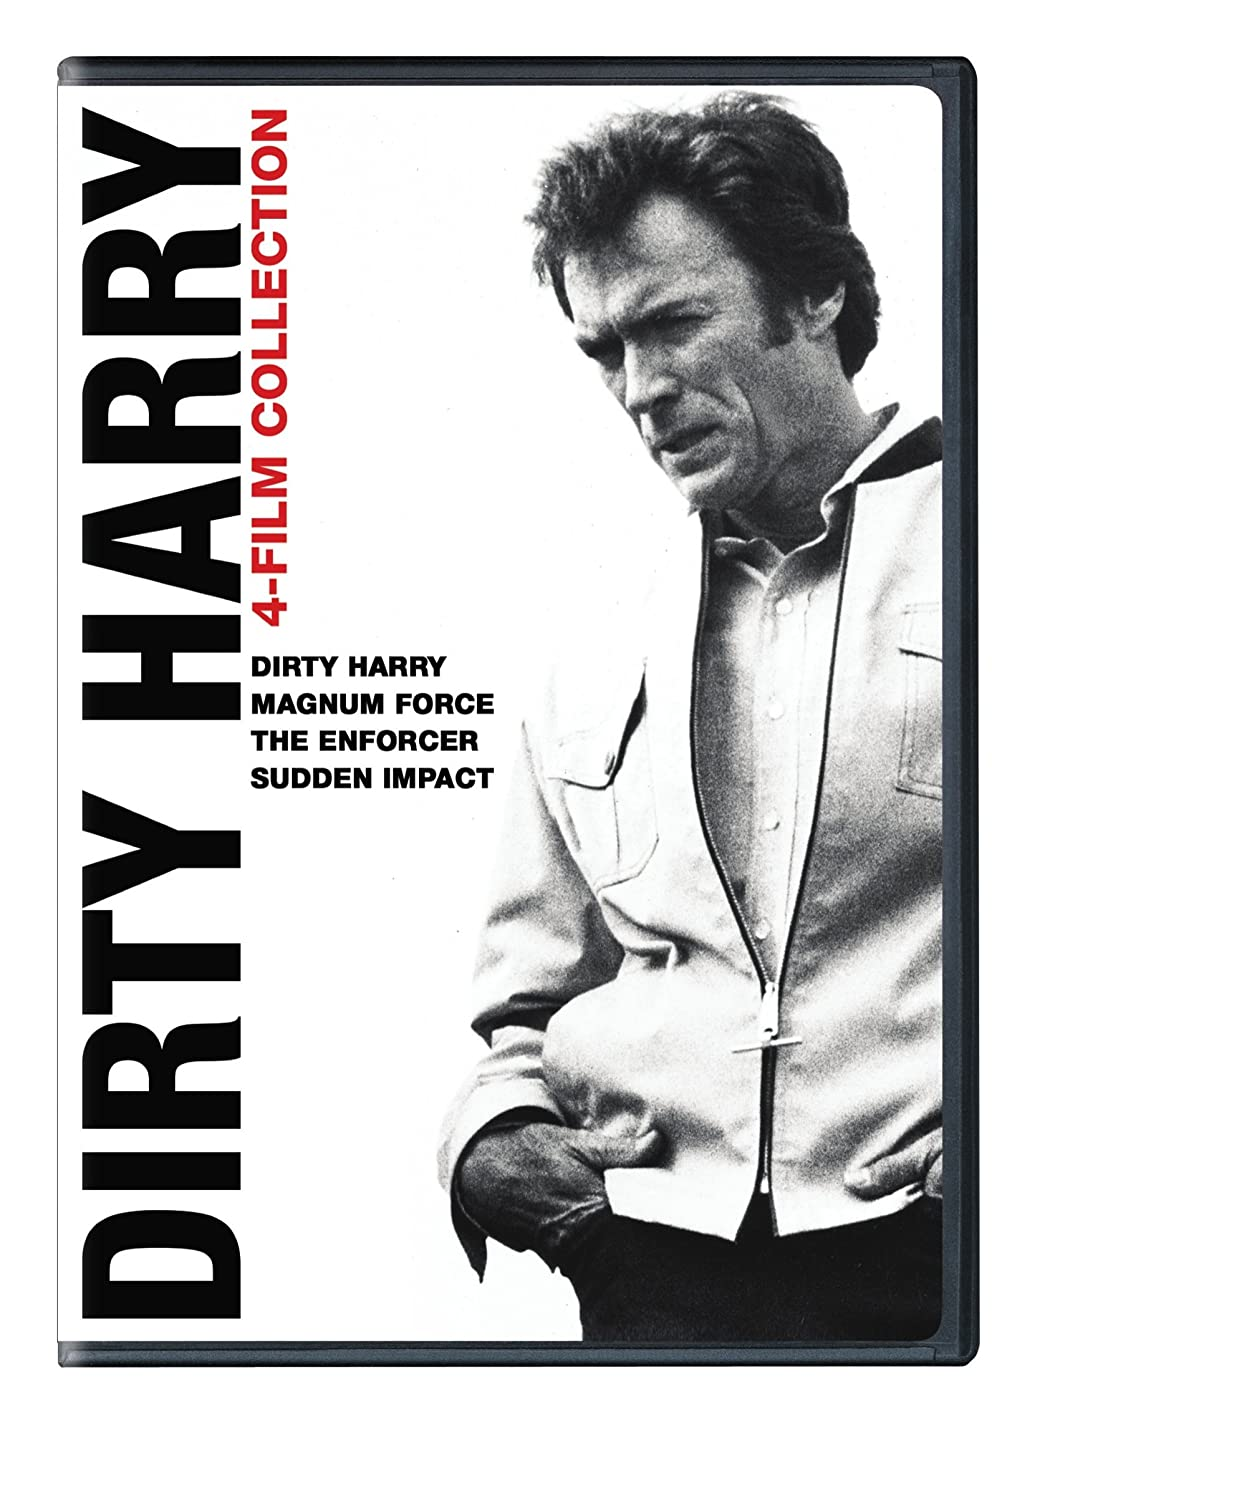 Amazon Com 4 Film Favorites Dirty Harry Dirty Harry Deluxe Edition The Enforcer Deluxe Edition Magnum Force Deluxe Edition Sudden Impact Deluxe